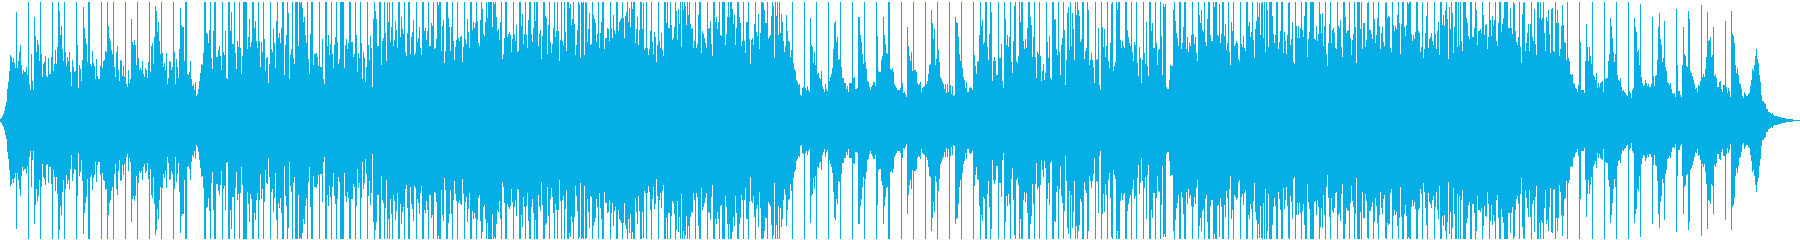 Innovate technology advertising's reproduced waveform